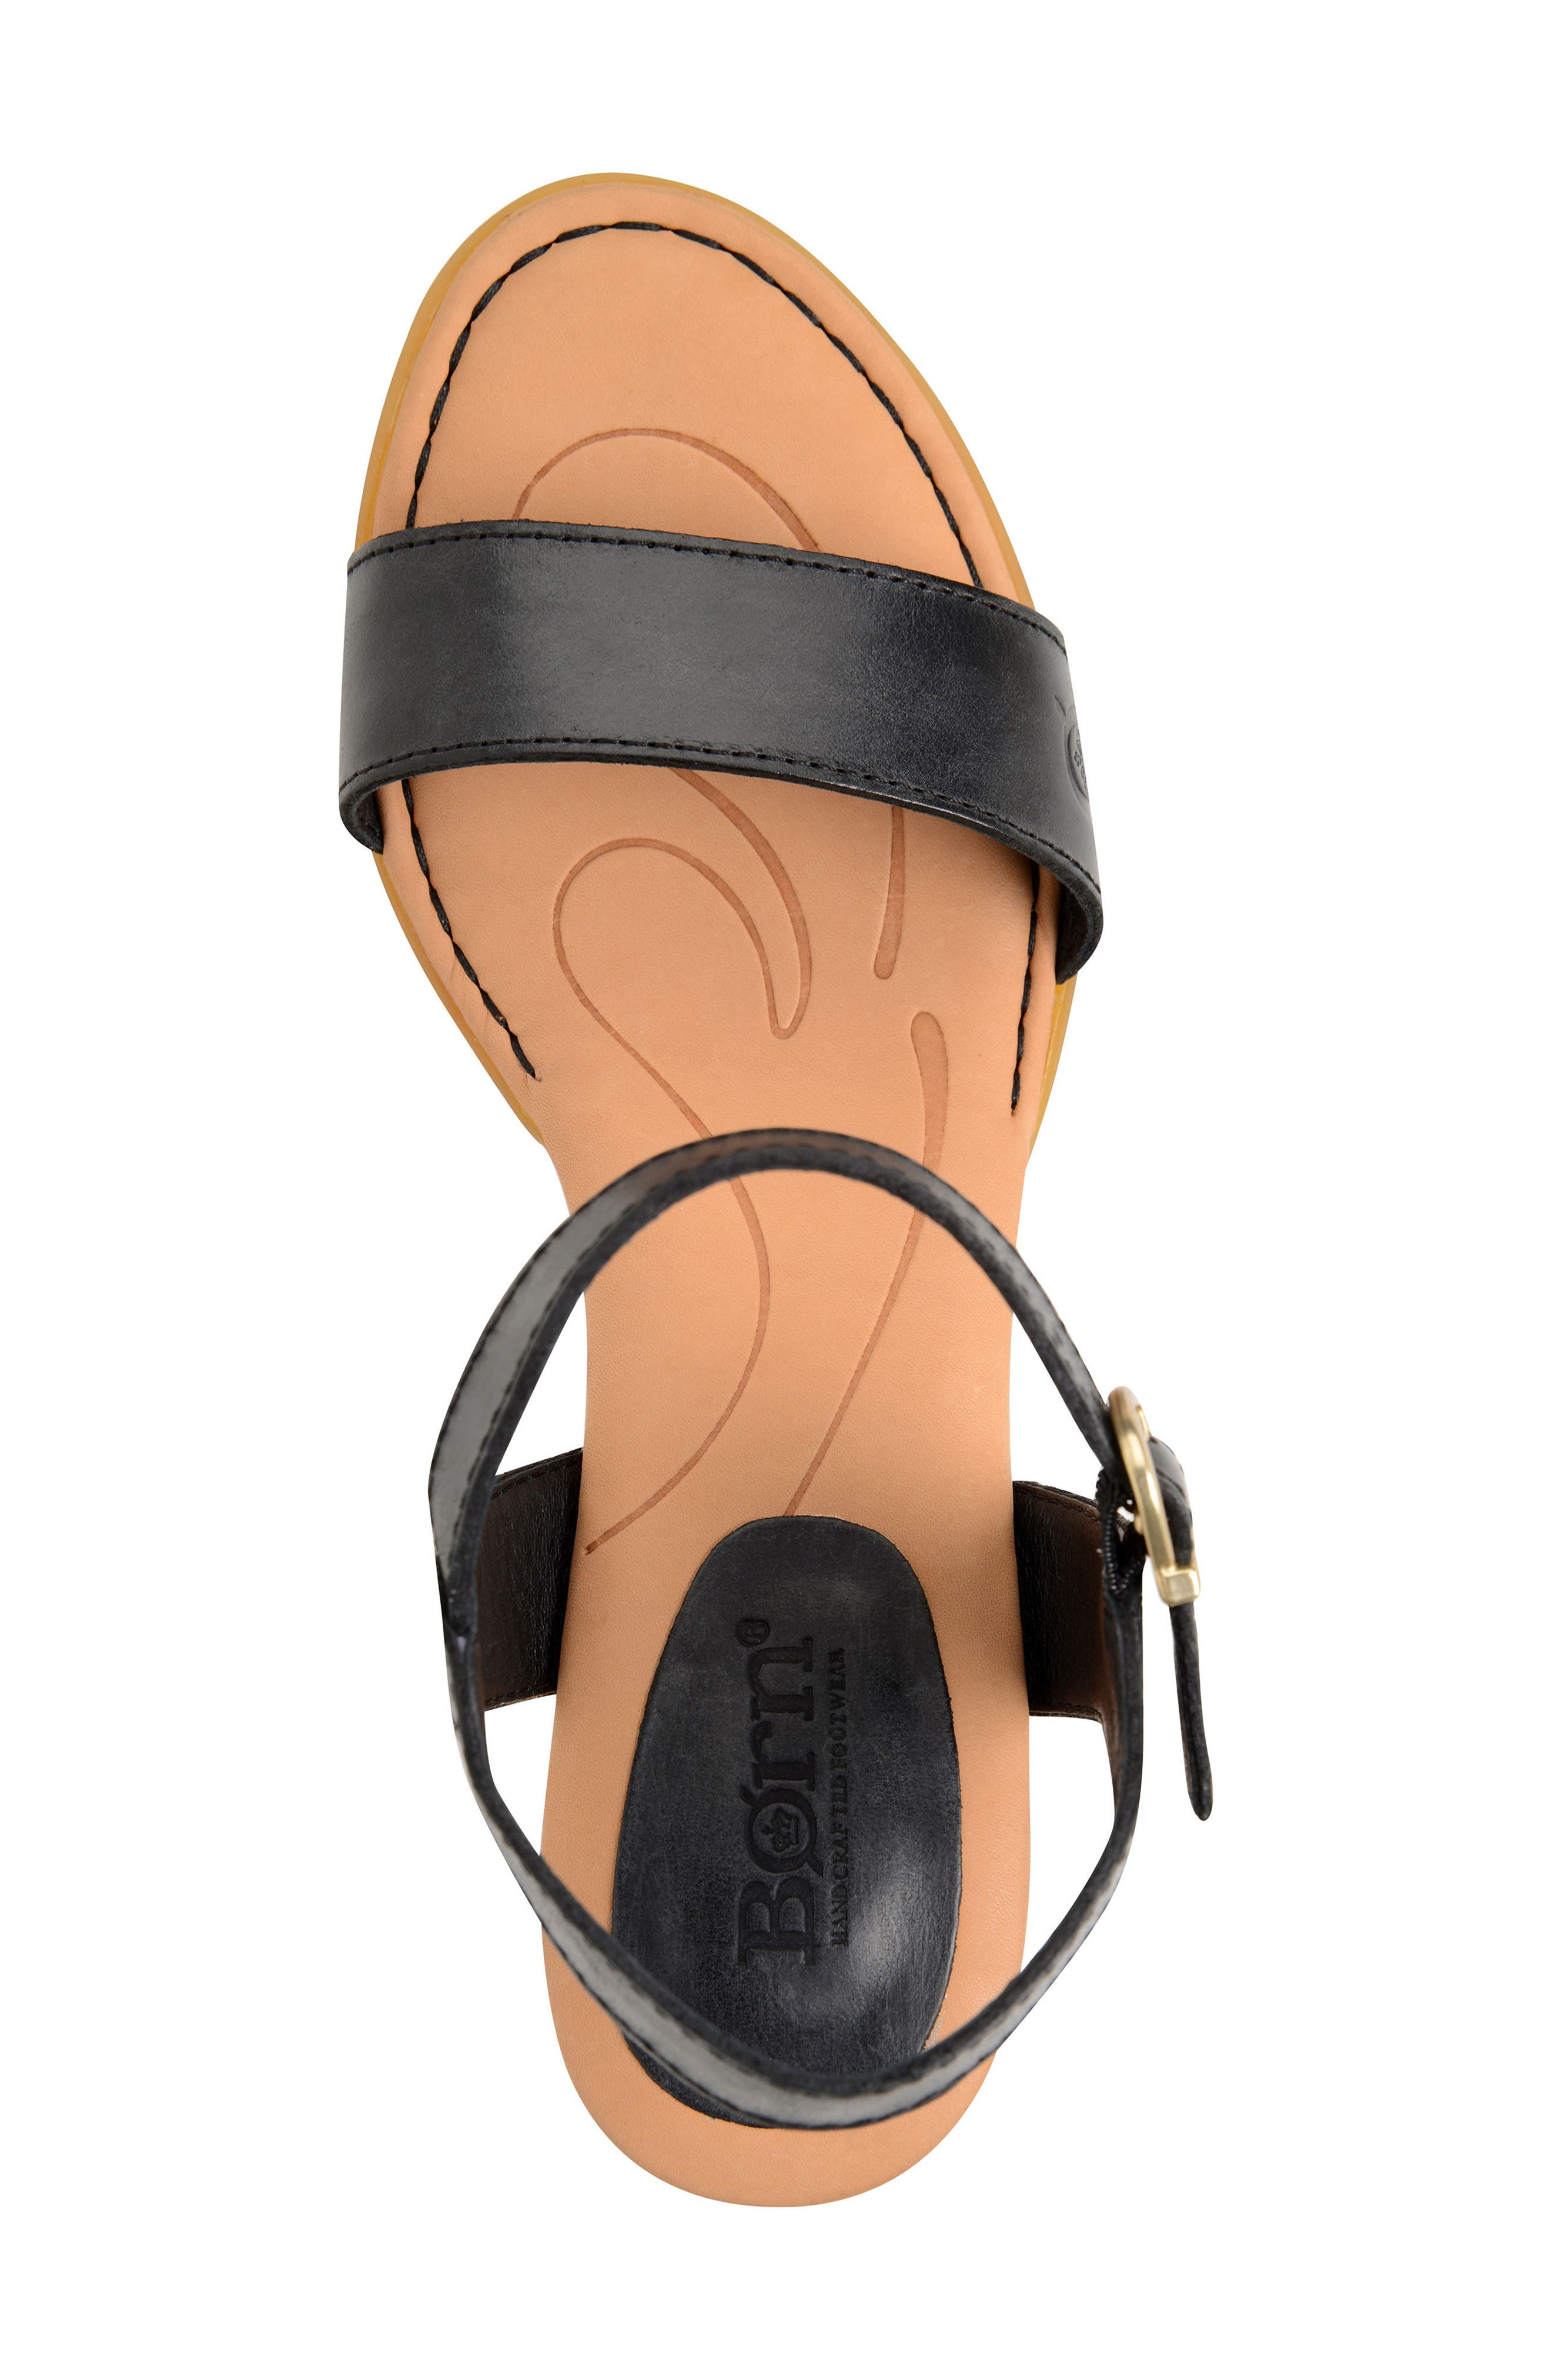 Medan Sandal,                             Alternate thumbnail 3, color,                             001